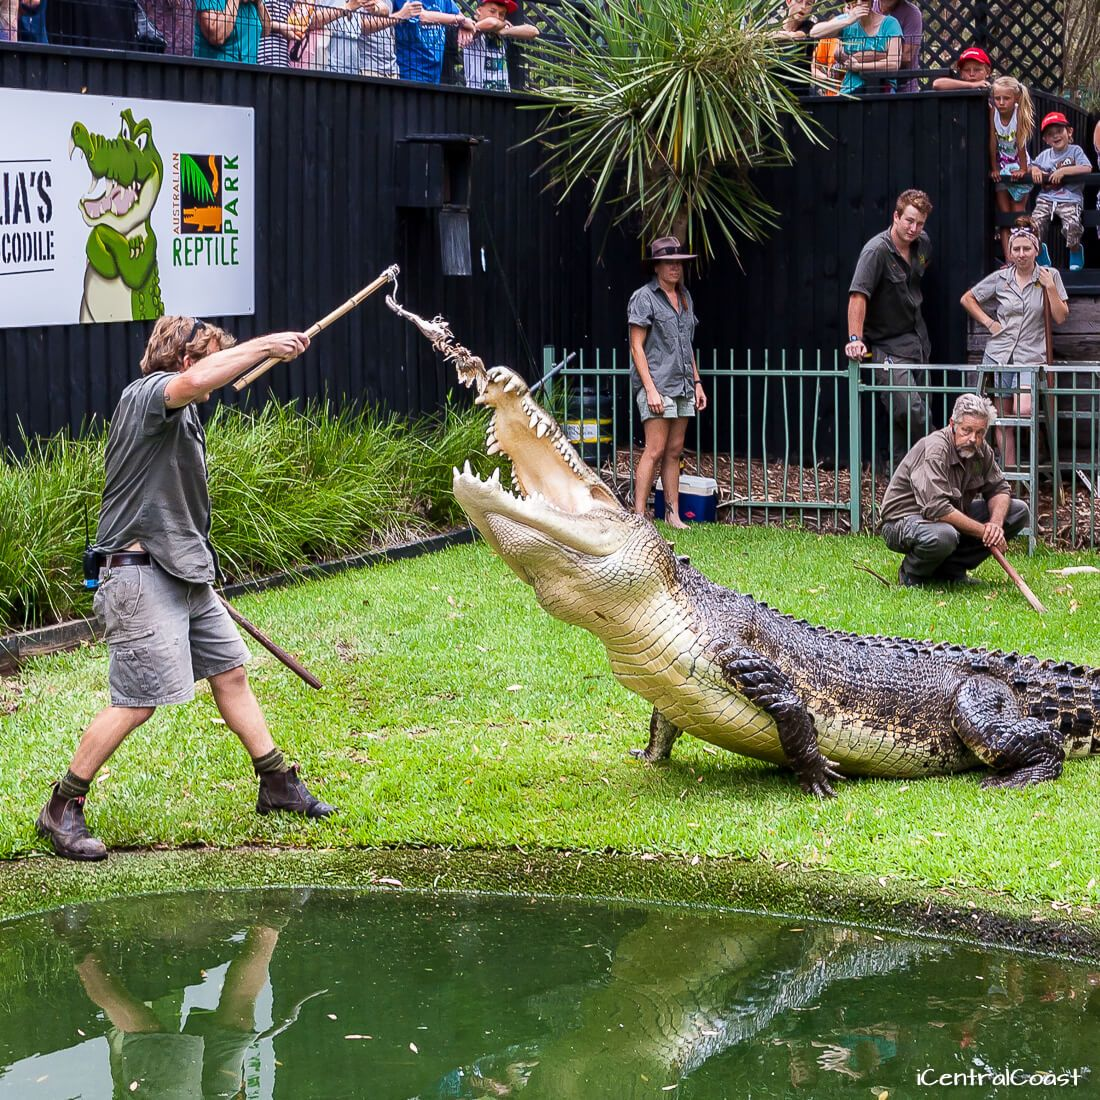 Central Coast attractions: Australian Reptile Park